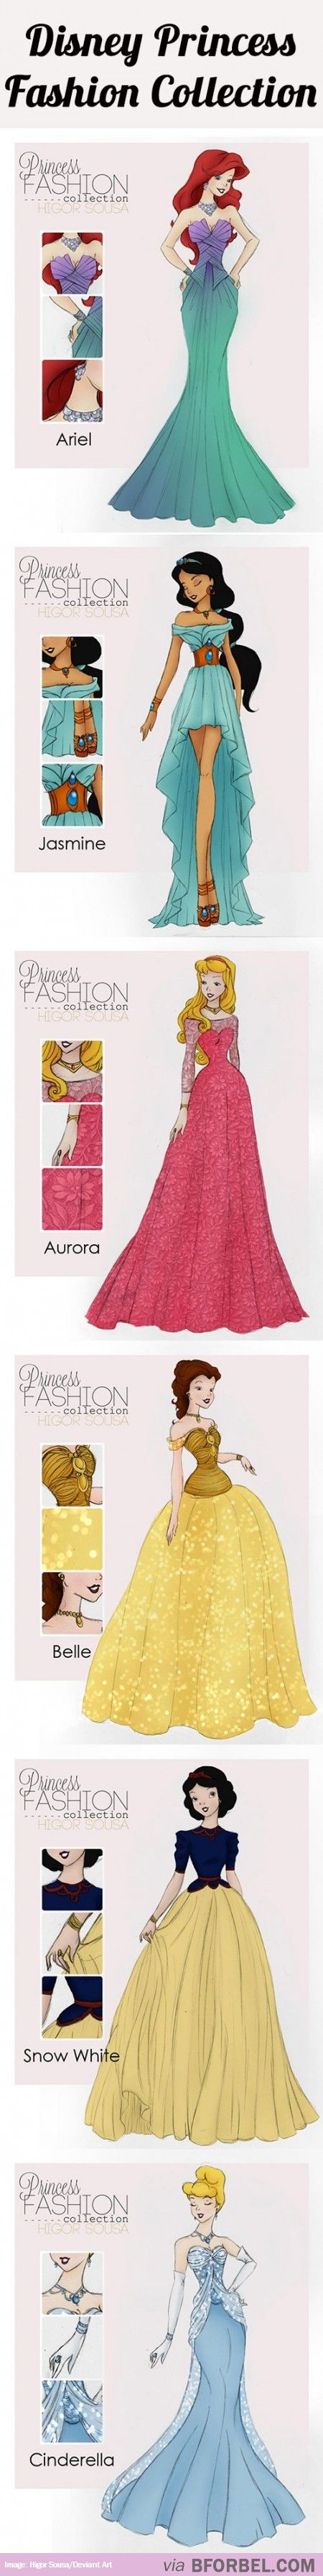 6 Disney Princess Fashion Collections…love cinderellas!